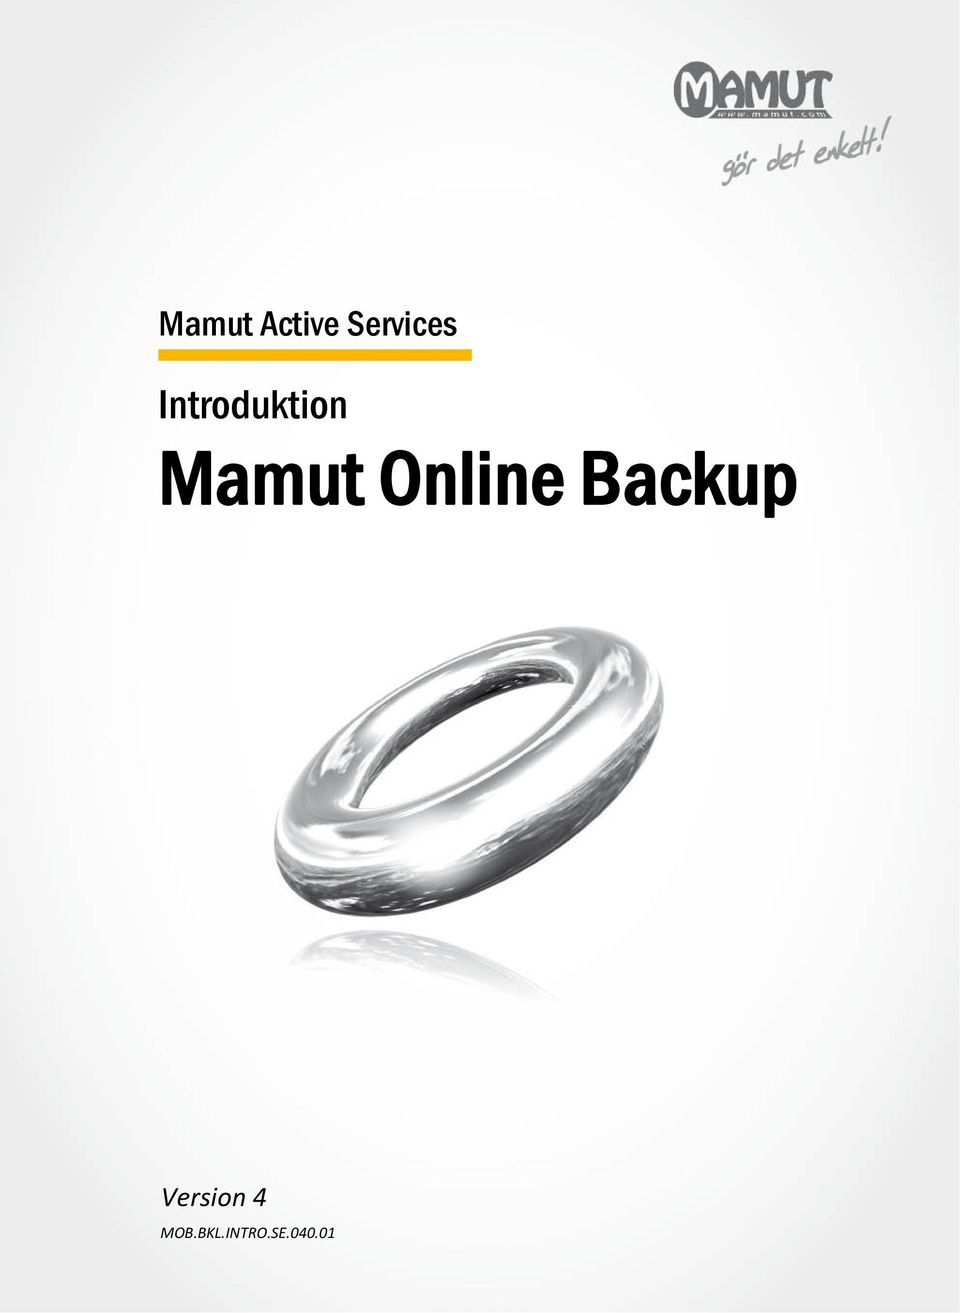 Online Backup Version